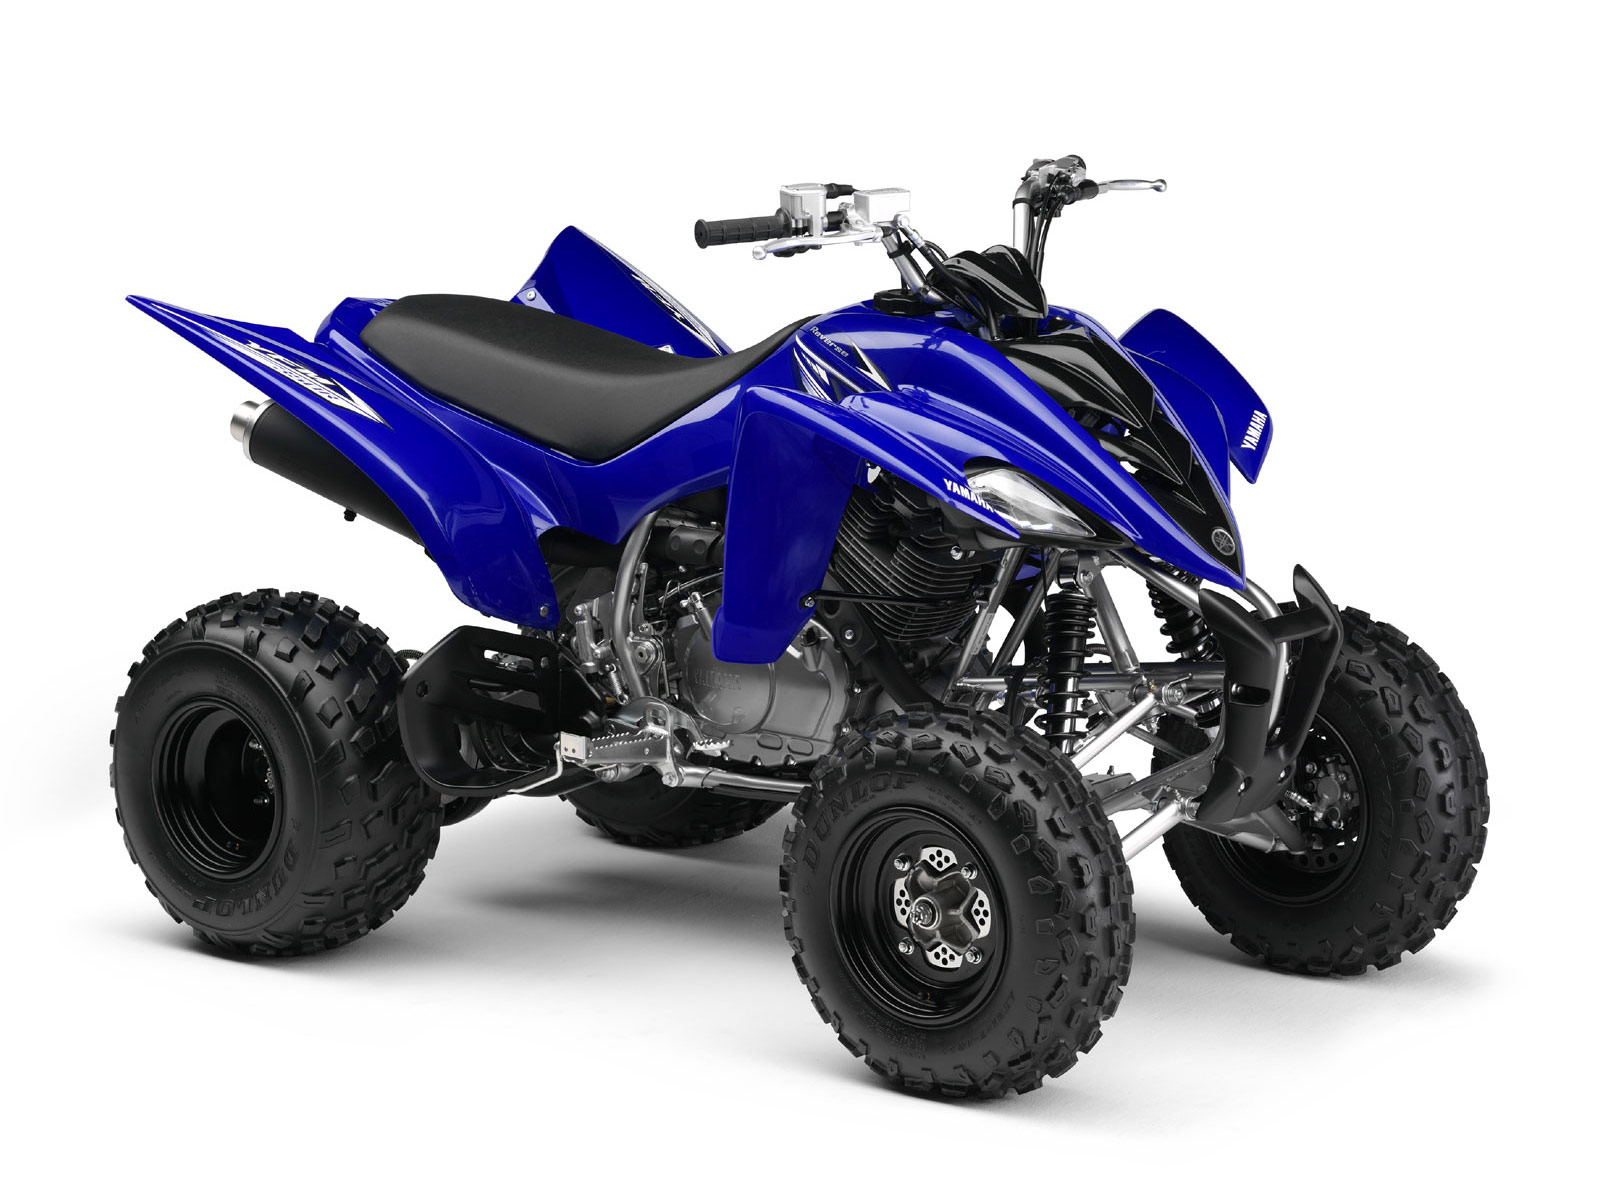 2009 YAMAHA Raptor 350 ATV pictures review and specifications 1600x1200